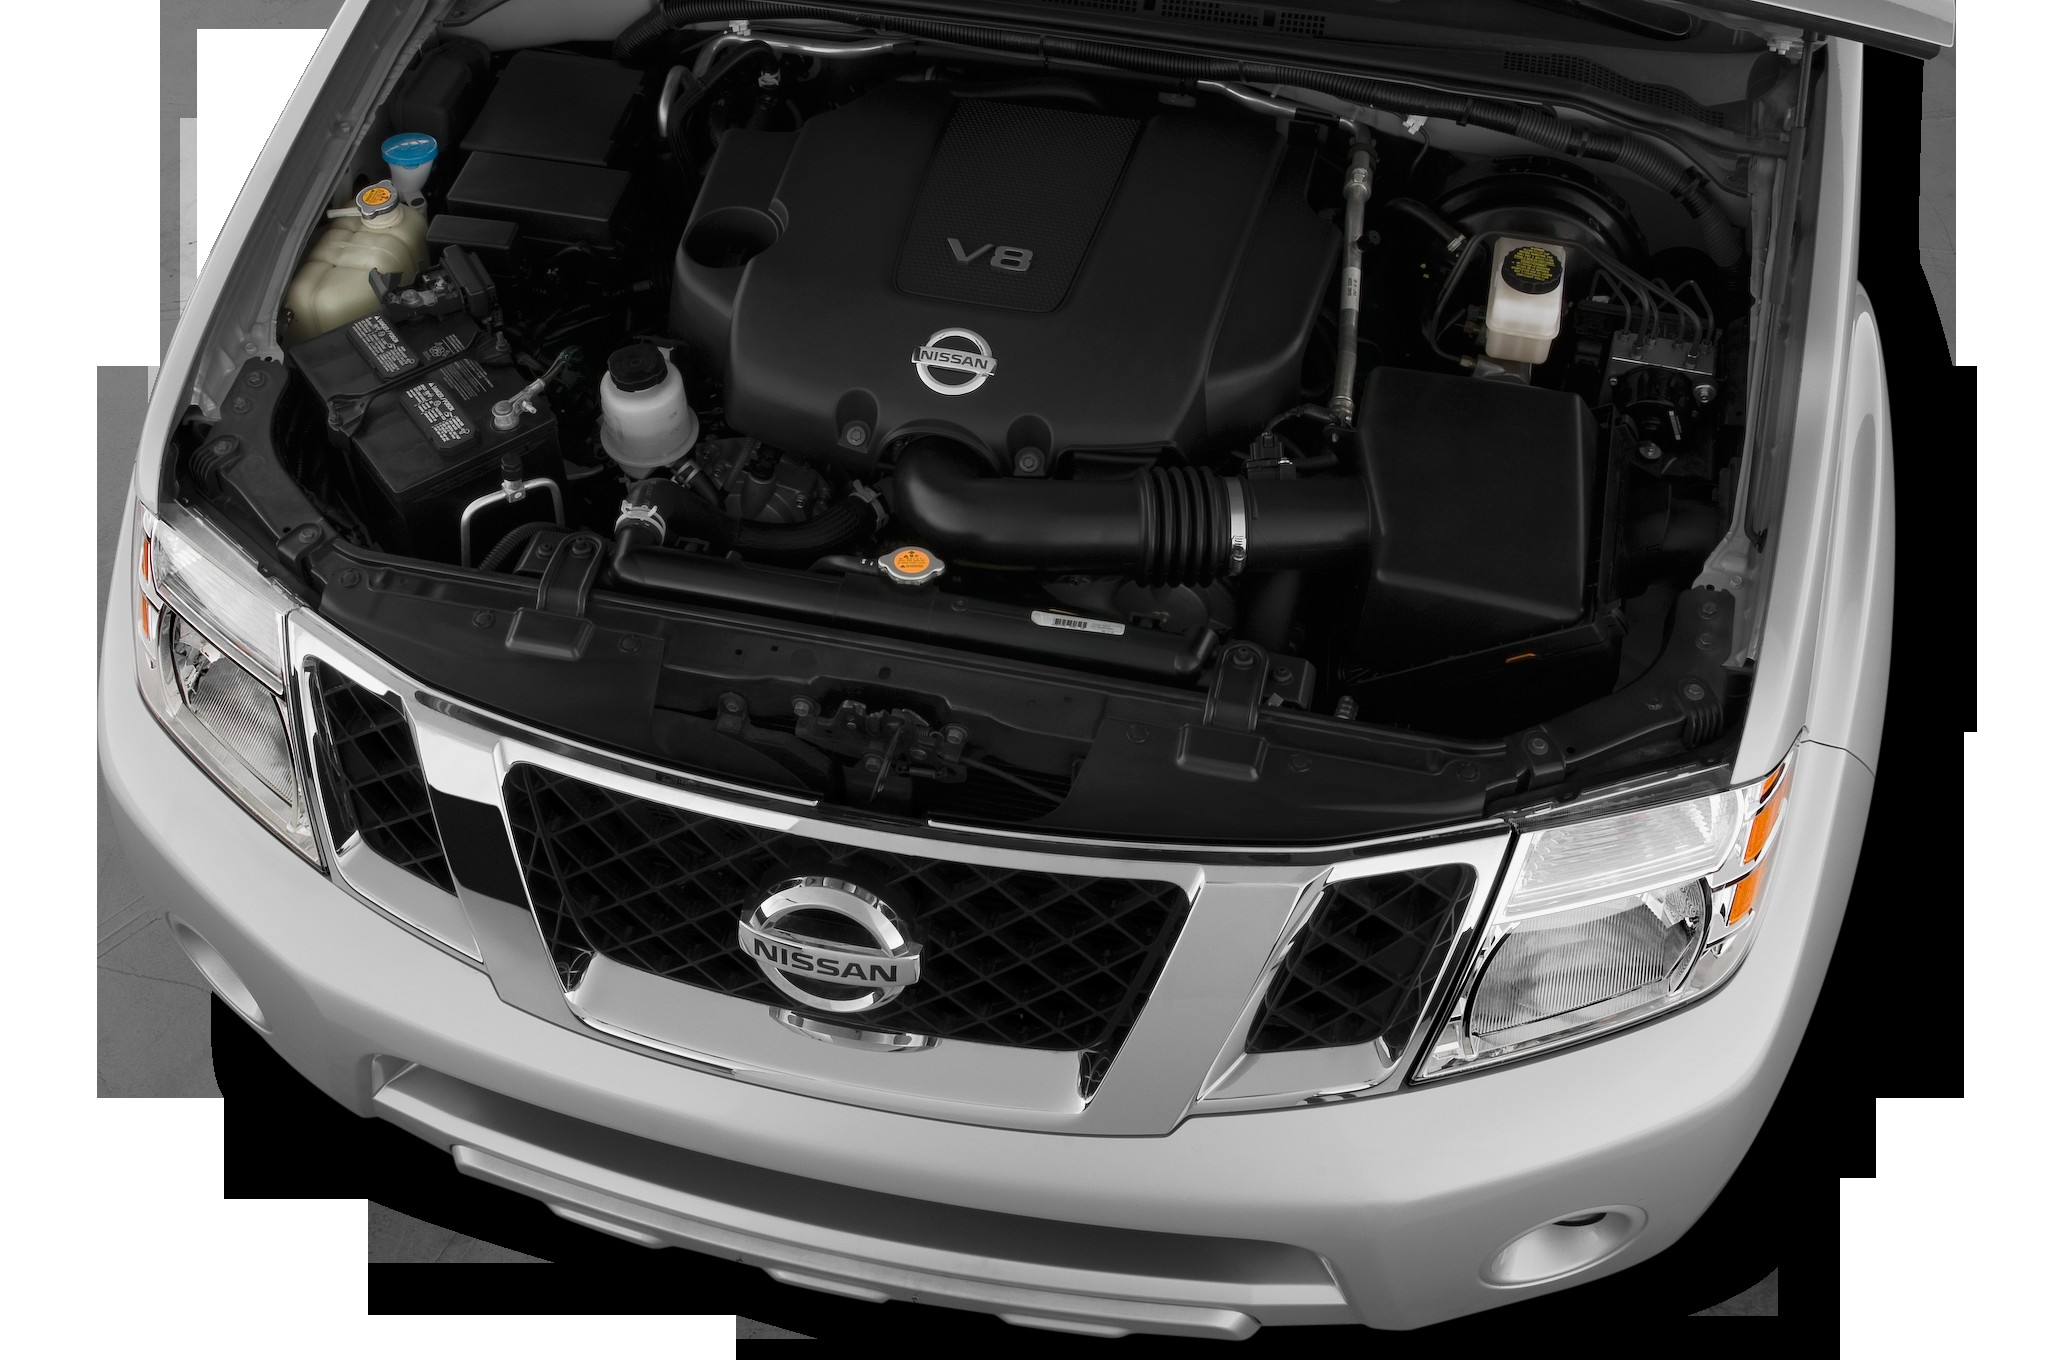 Nissan Leaf Engine Diagram 2011 Nissan Leaf Lease Pricing Will Rival toyota Prius Honda Accord Of Nissan Leaf Engine Diagram